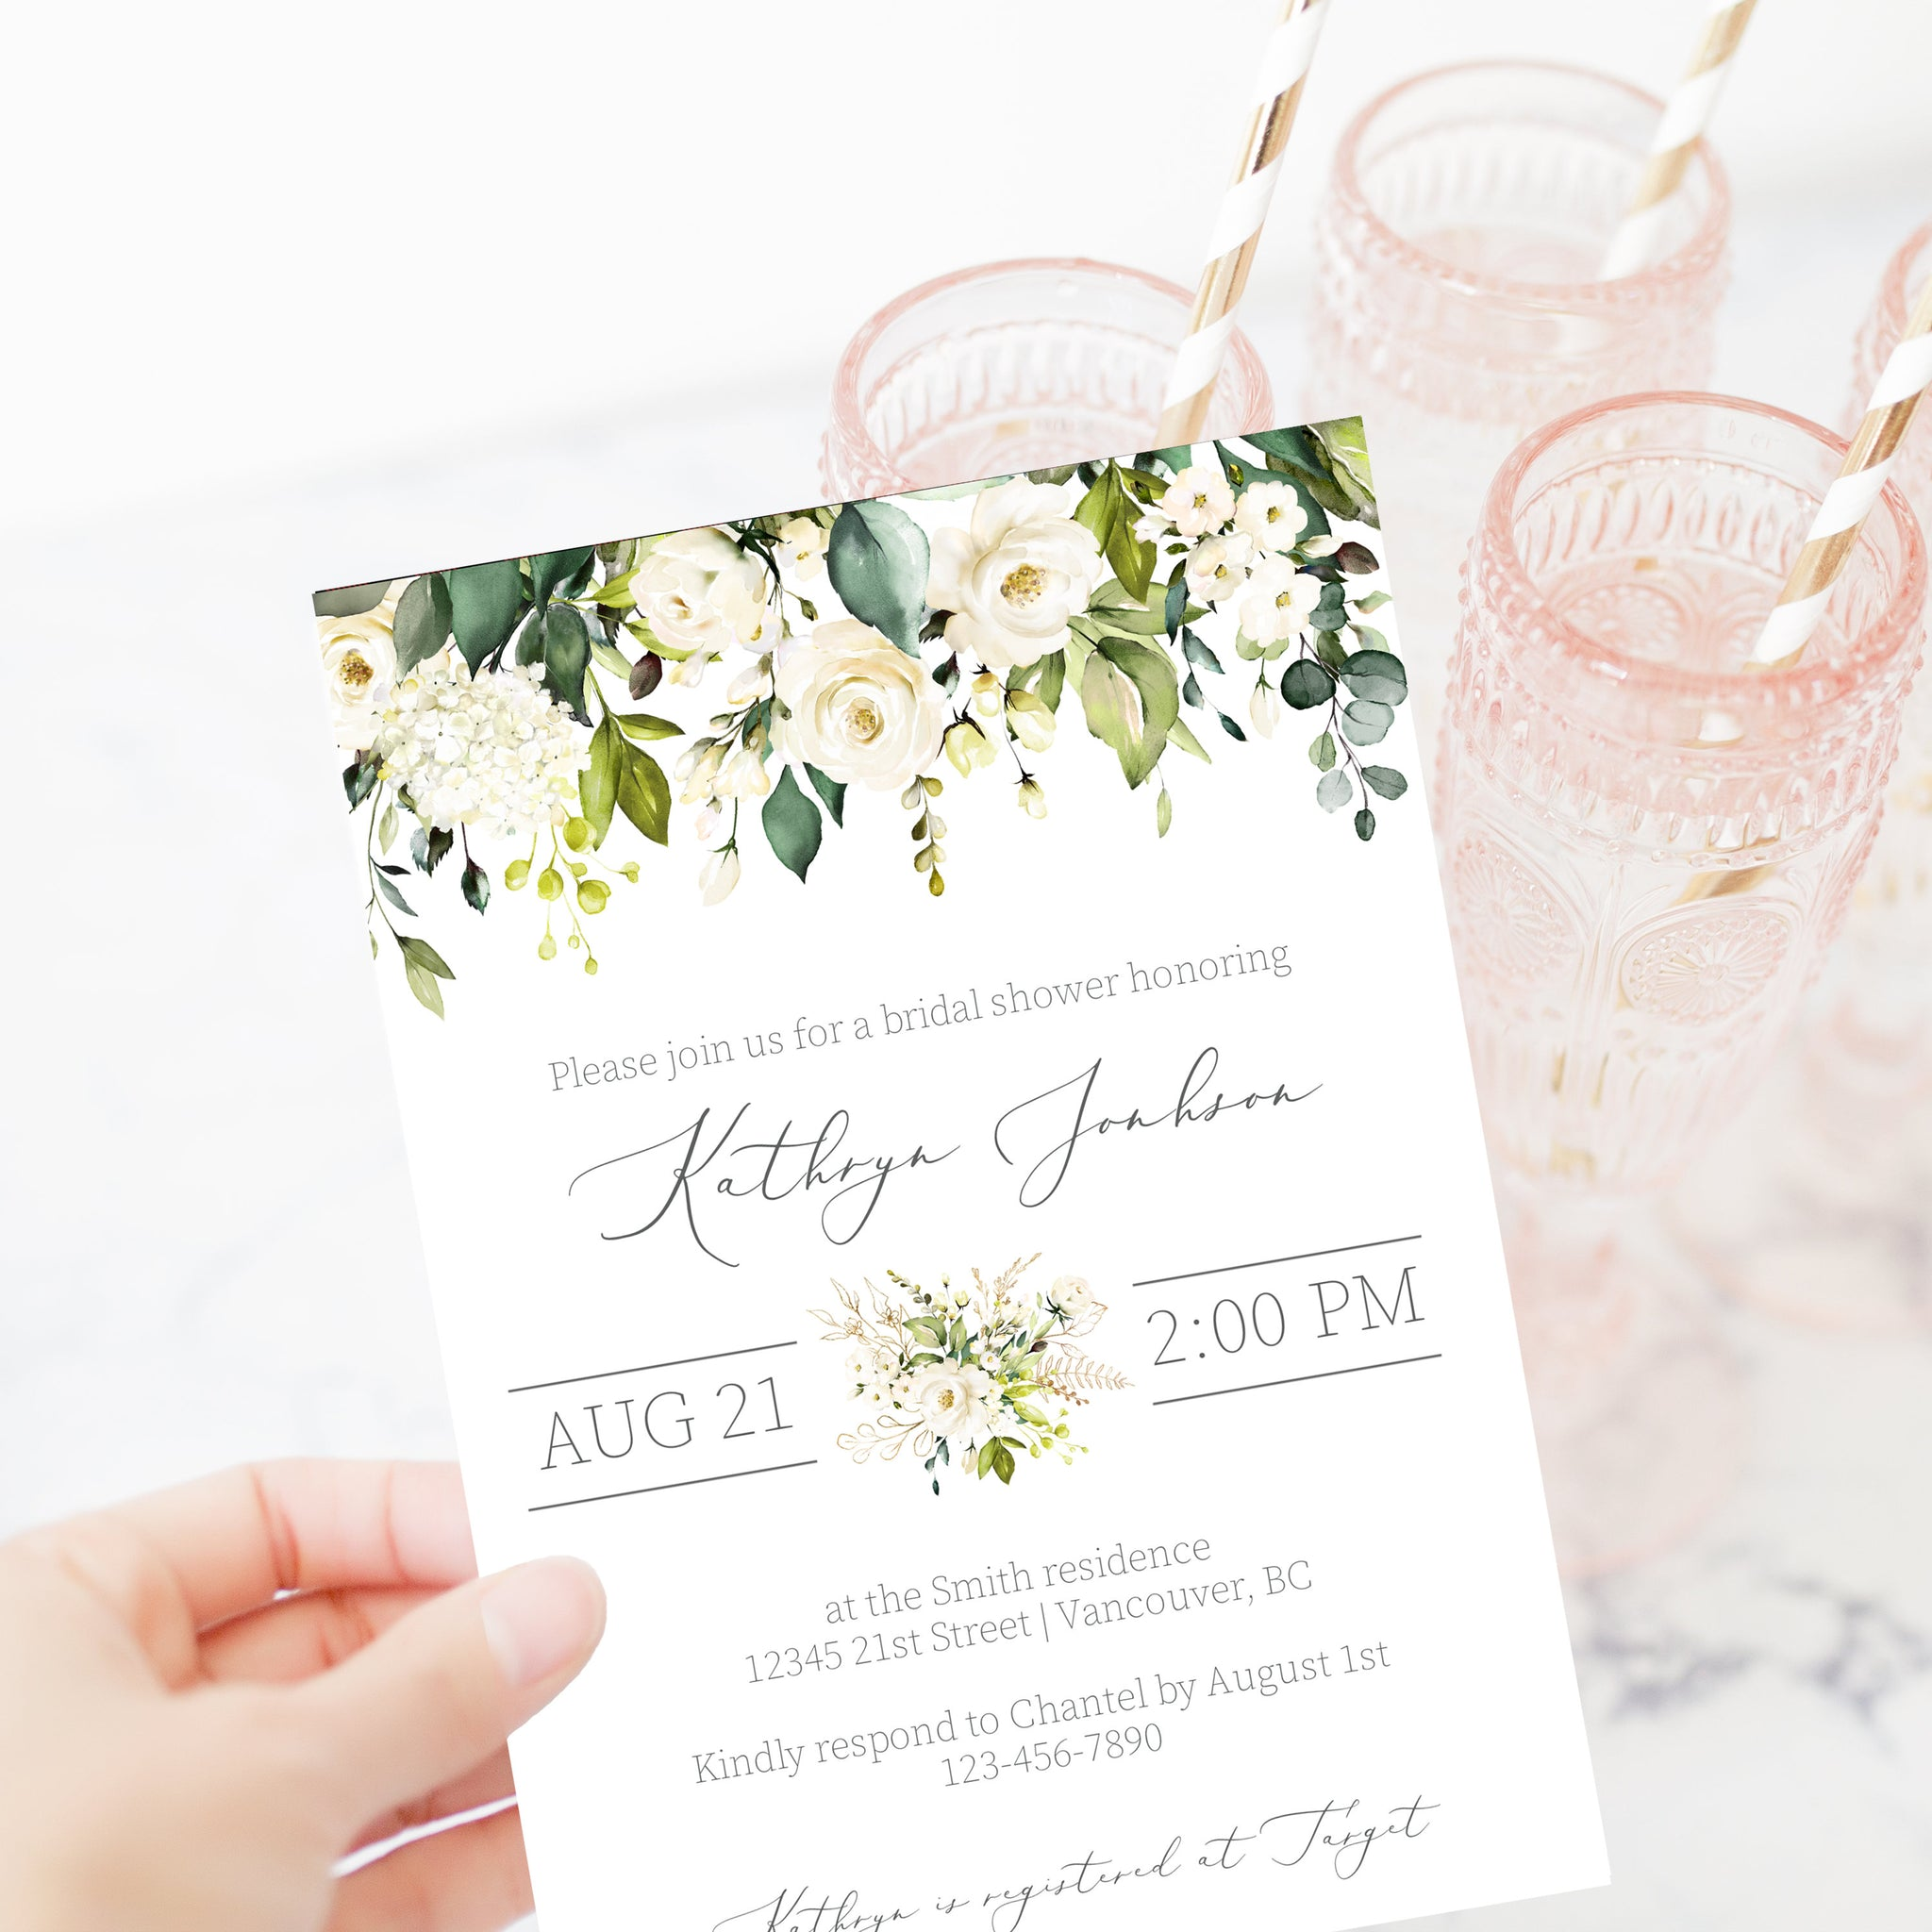 White Floral Greenery Bridal Shower Invitation Template, Printable Bridal Shower Invite, Editable DIGITAL DOWNLOAD - WRG100 - @PlumPolkaDot